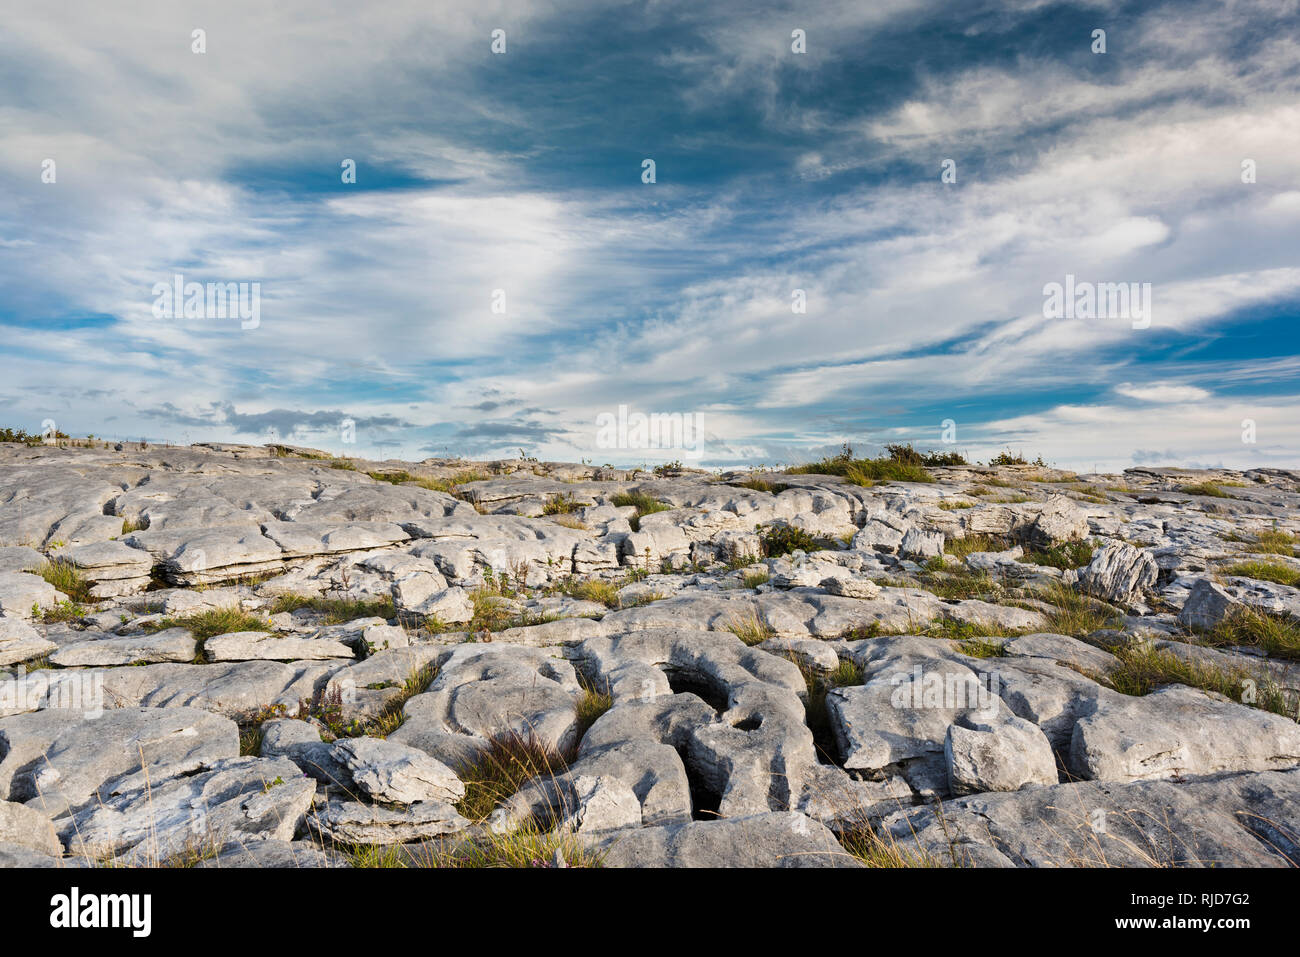 Limestone pavement in the Burren County Clare, Ireland - Stock Image